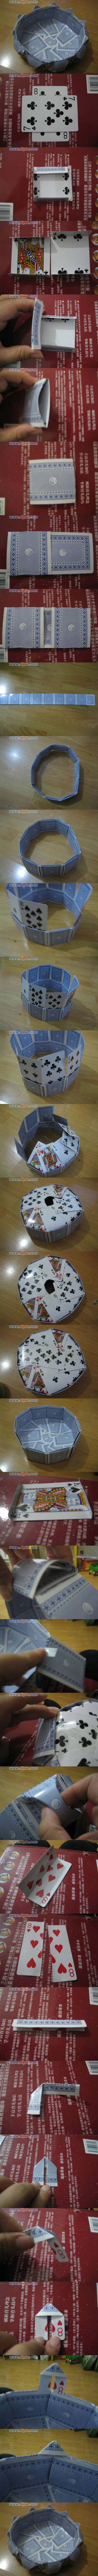 How to make storage bins with poker Cards step by step DIY tutorial instructions